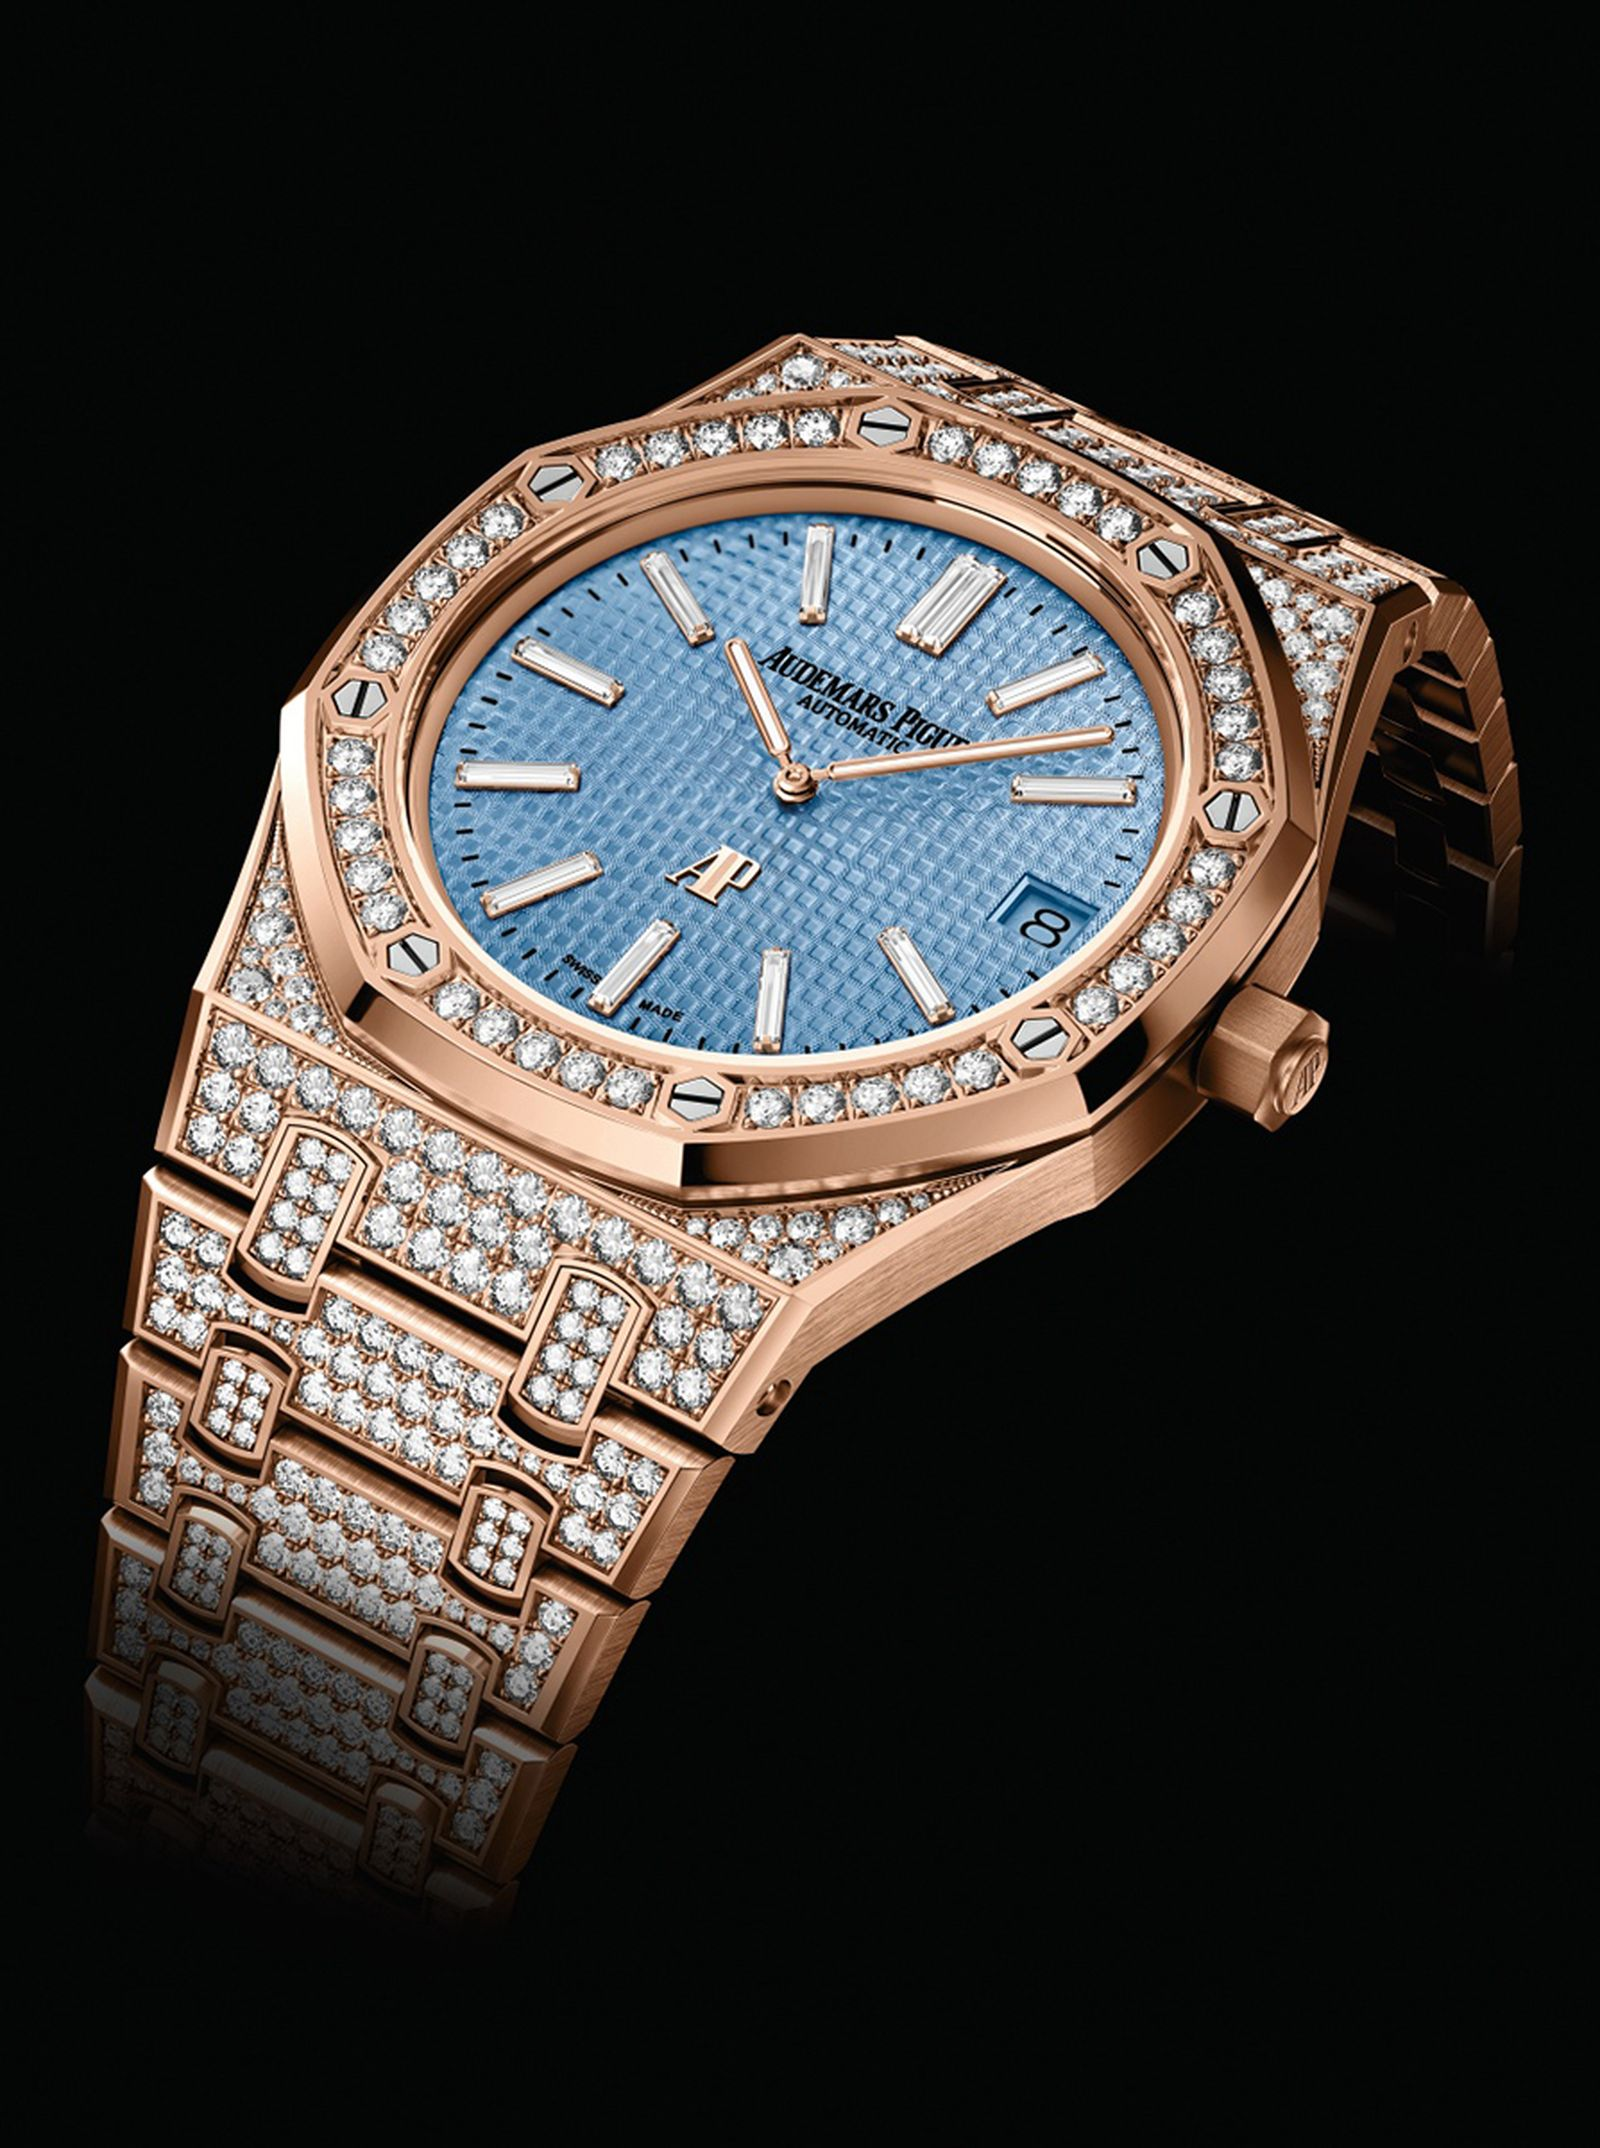 audemars-piguet-royal-oak-jumbo-extra-thin-diamond-set-06